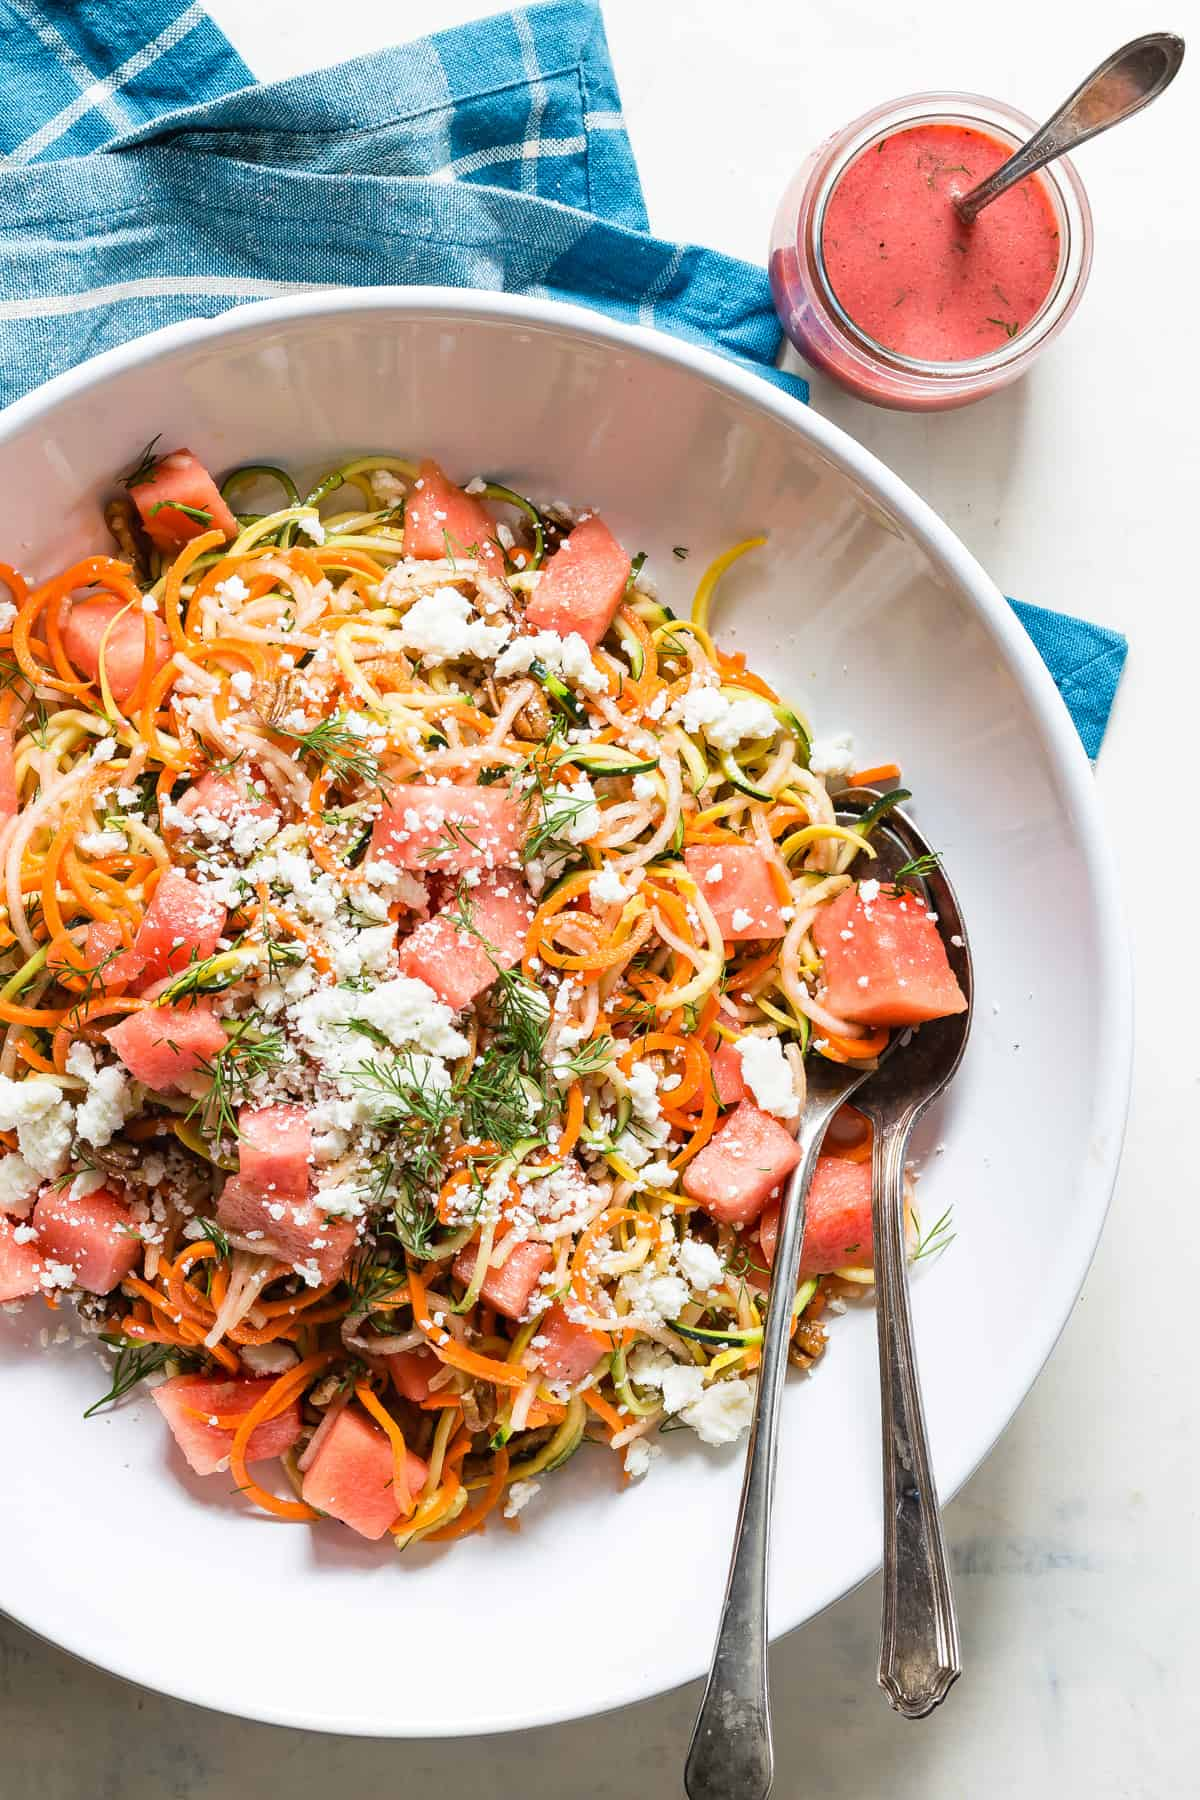 Fresh watermelon salad with spiraled veggies.